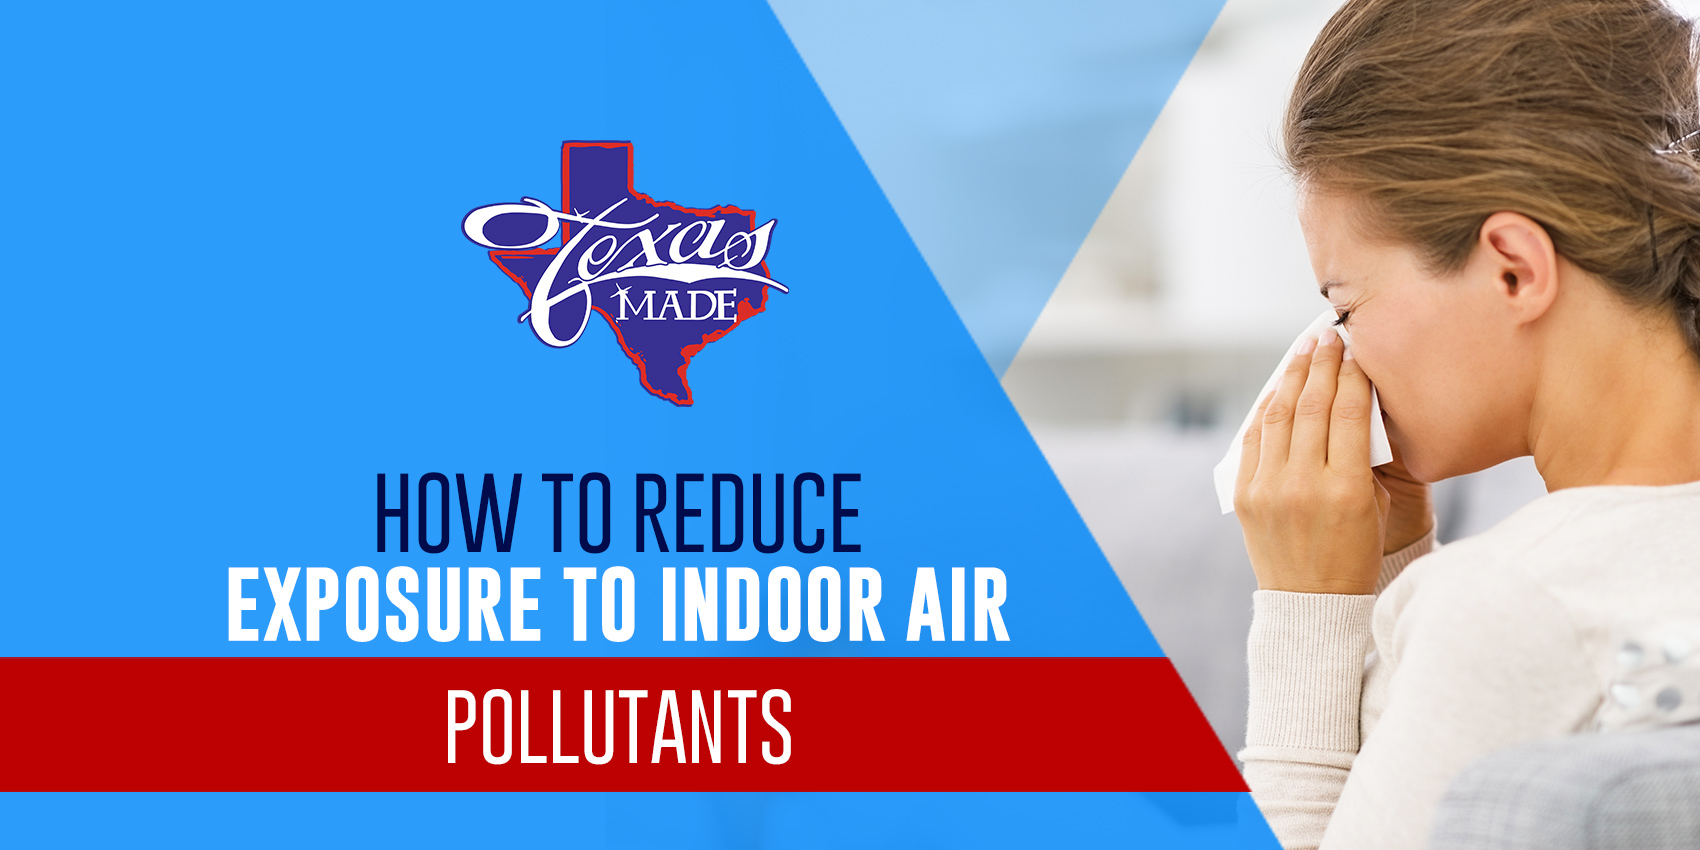 How to Reduce Exposure to Indoor Air Pollutants